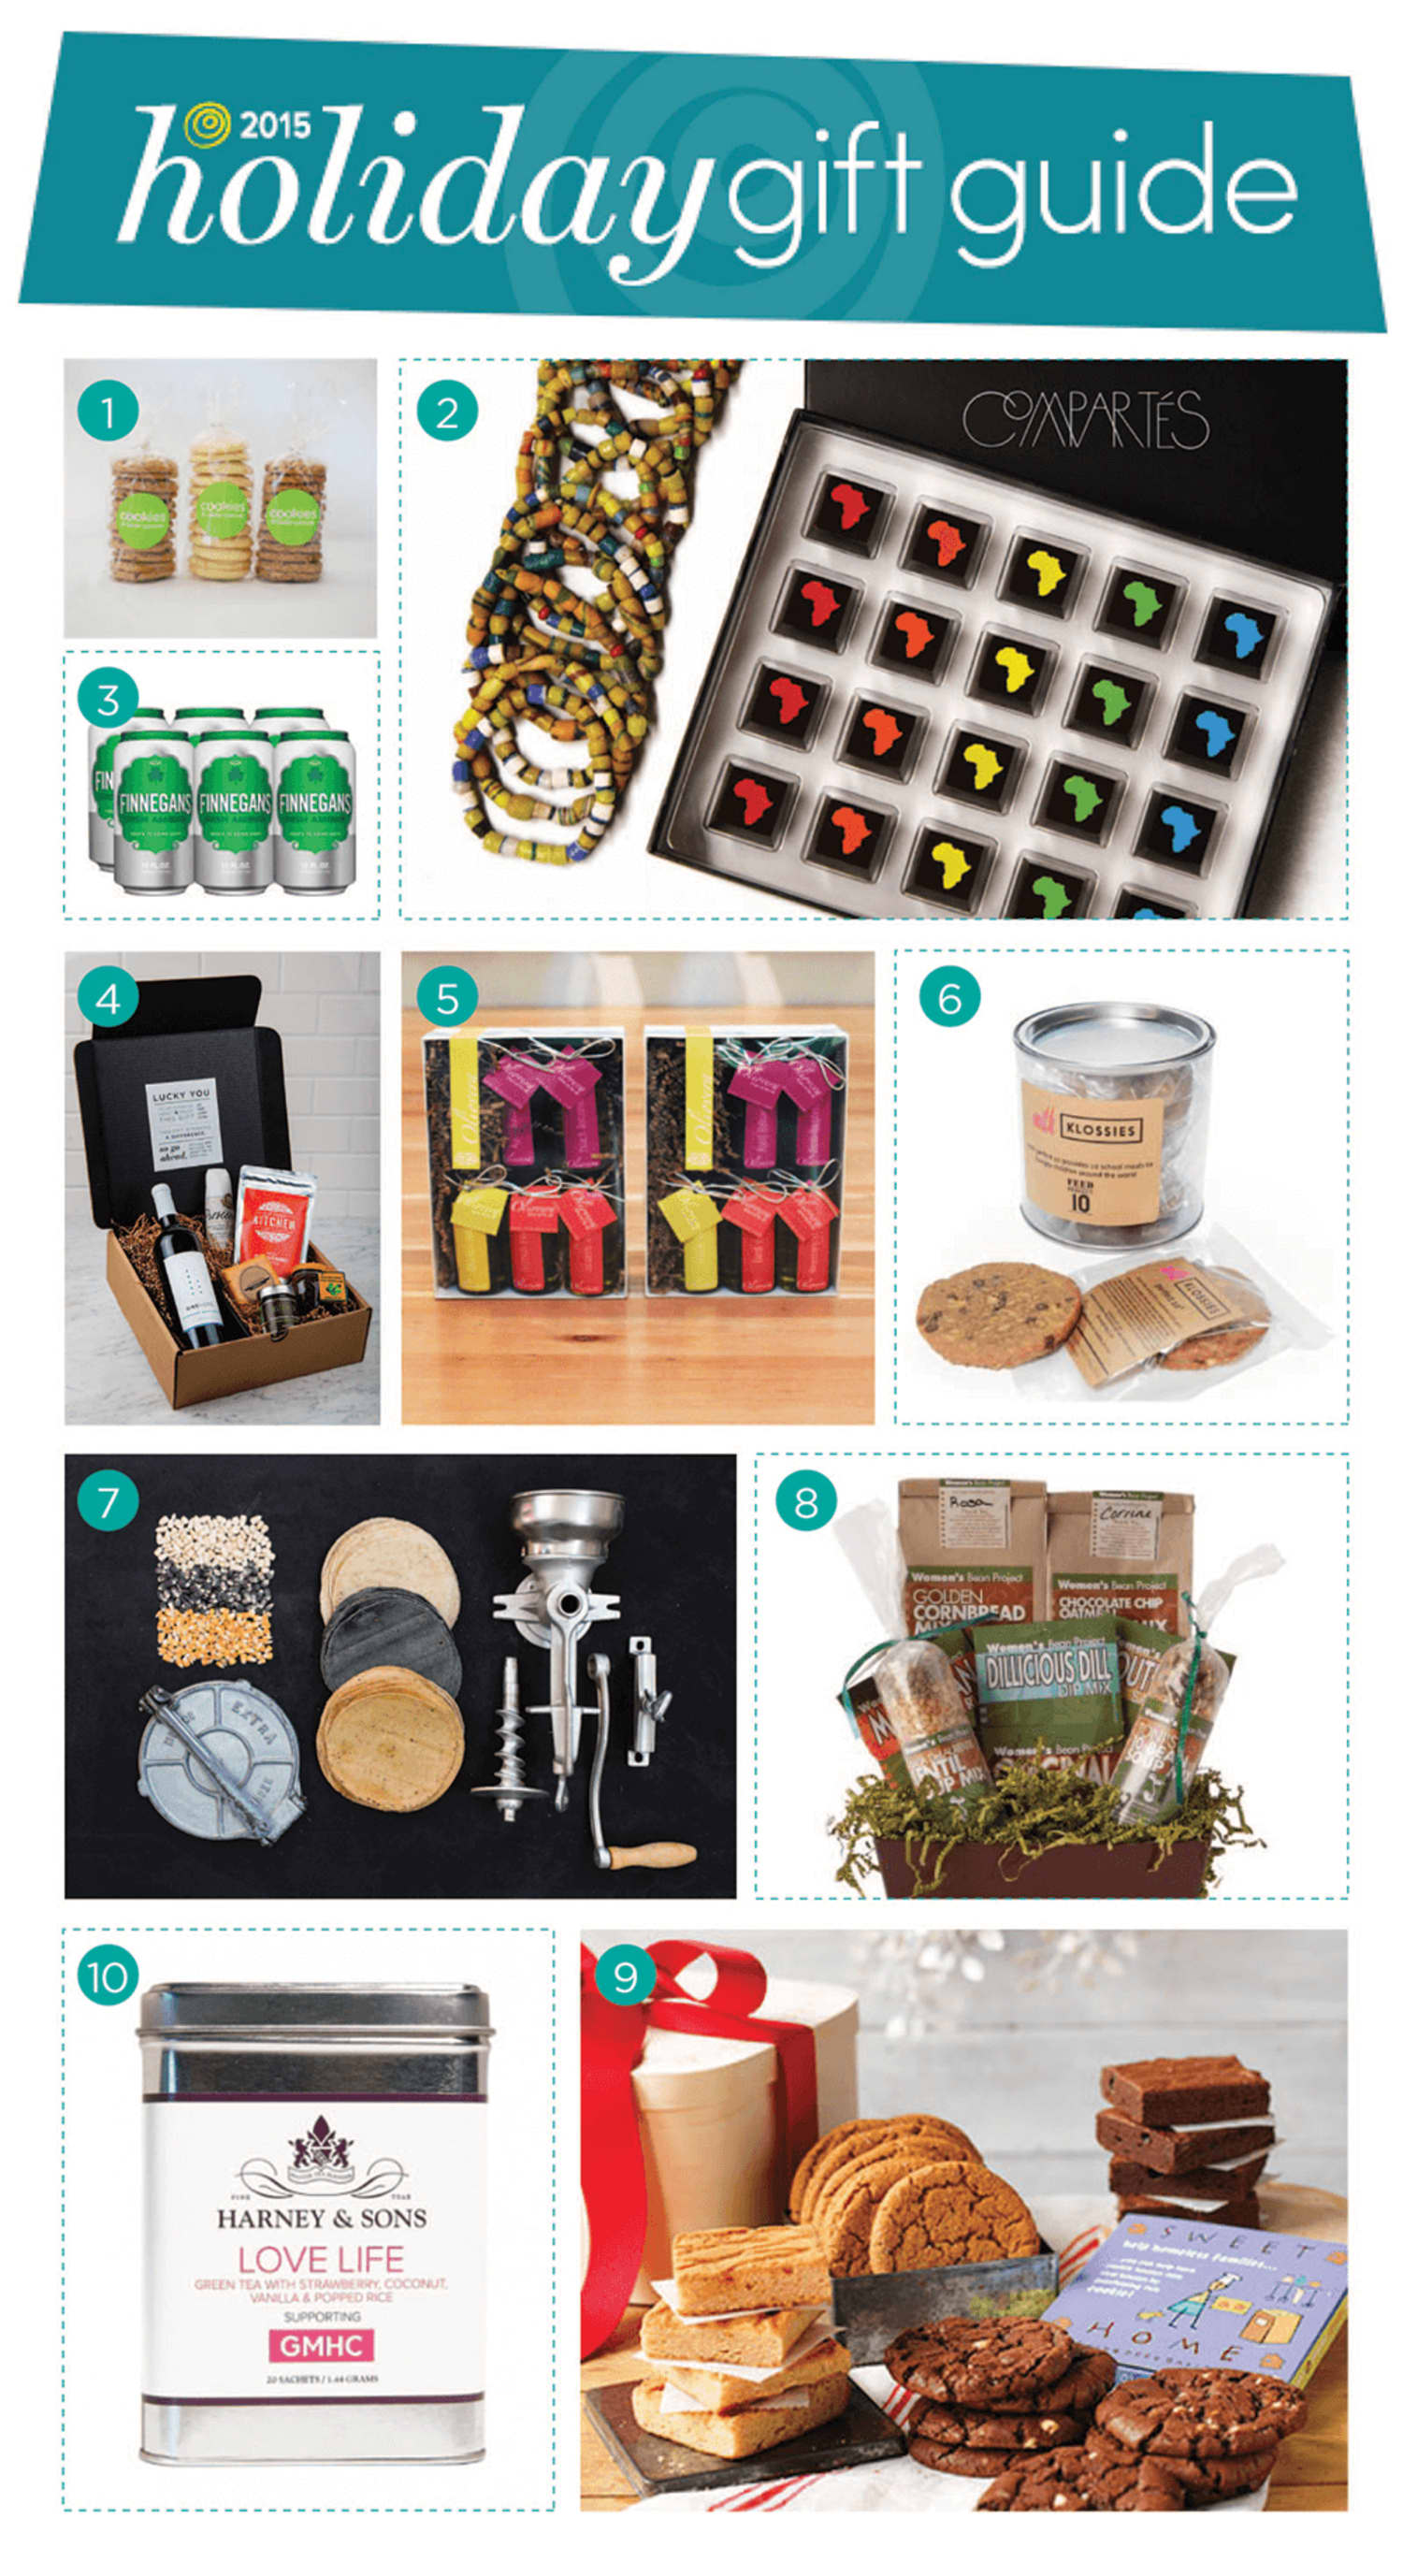 10 Generous Food Gifts That Give Back